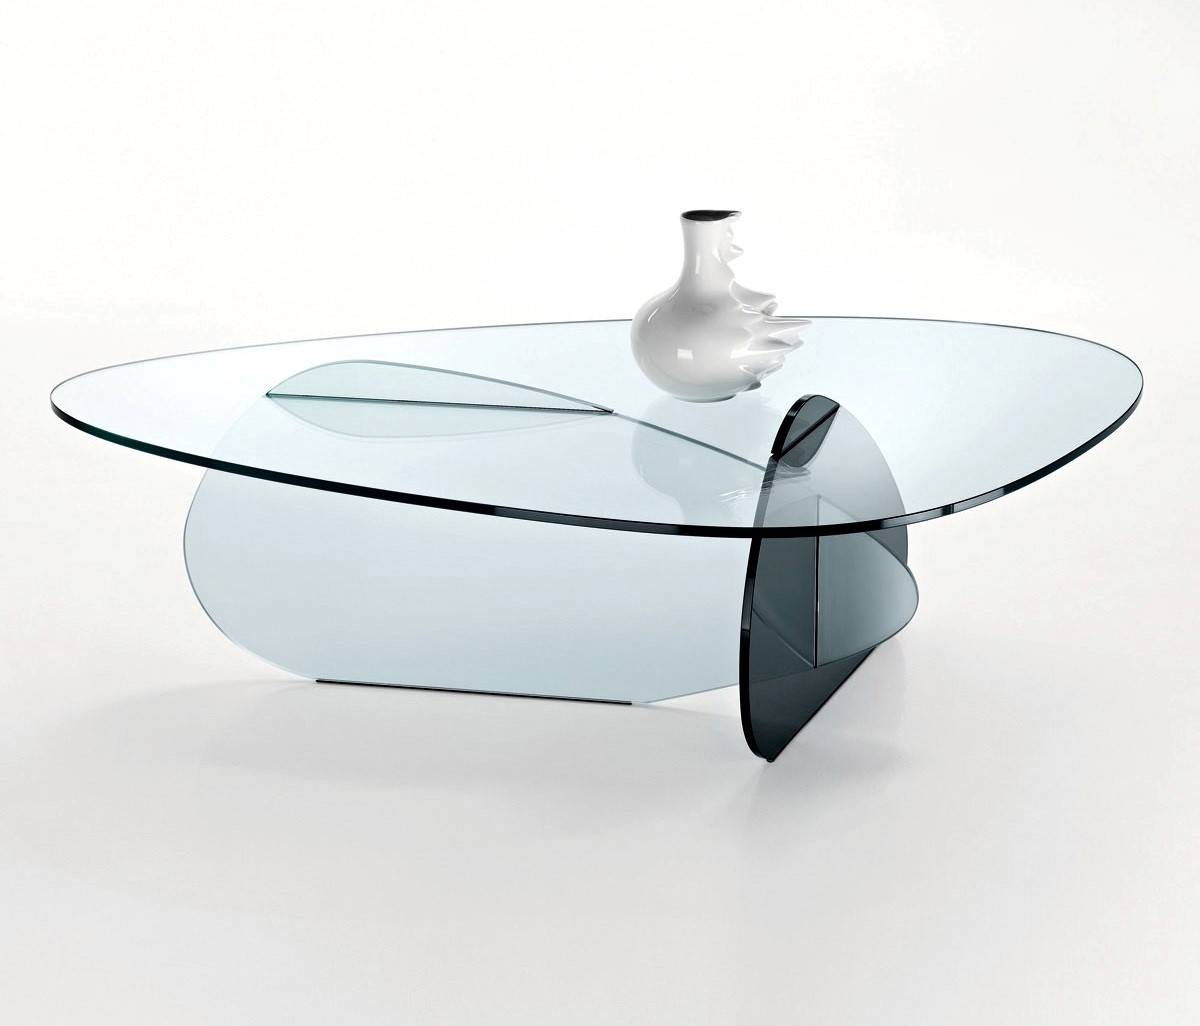 Furniture. Modern Glass Coffee Tables Ideas: Clear Triangle Shaped within Modern Glass Coffee Tables (Image 12 of 30)